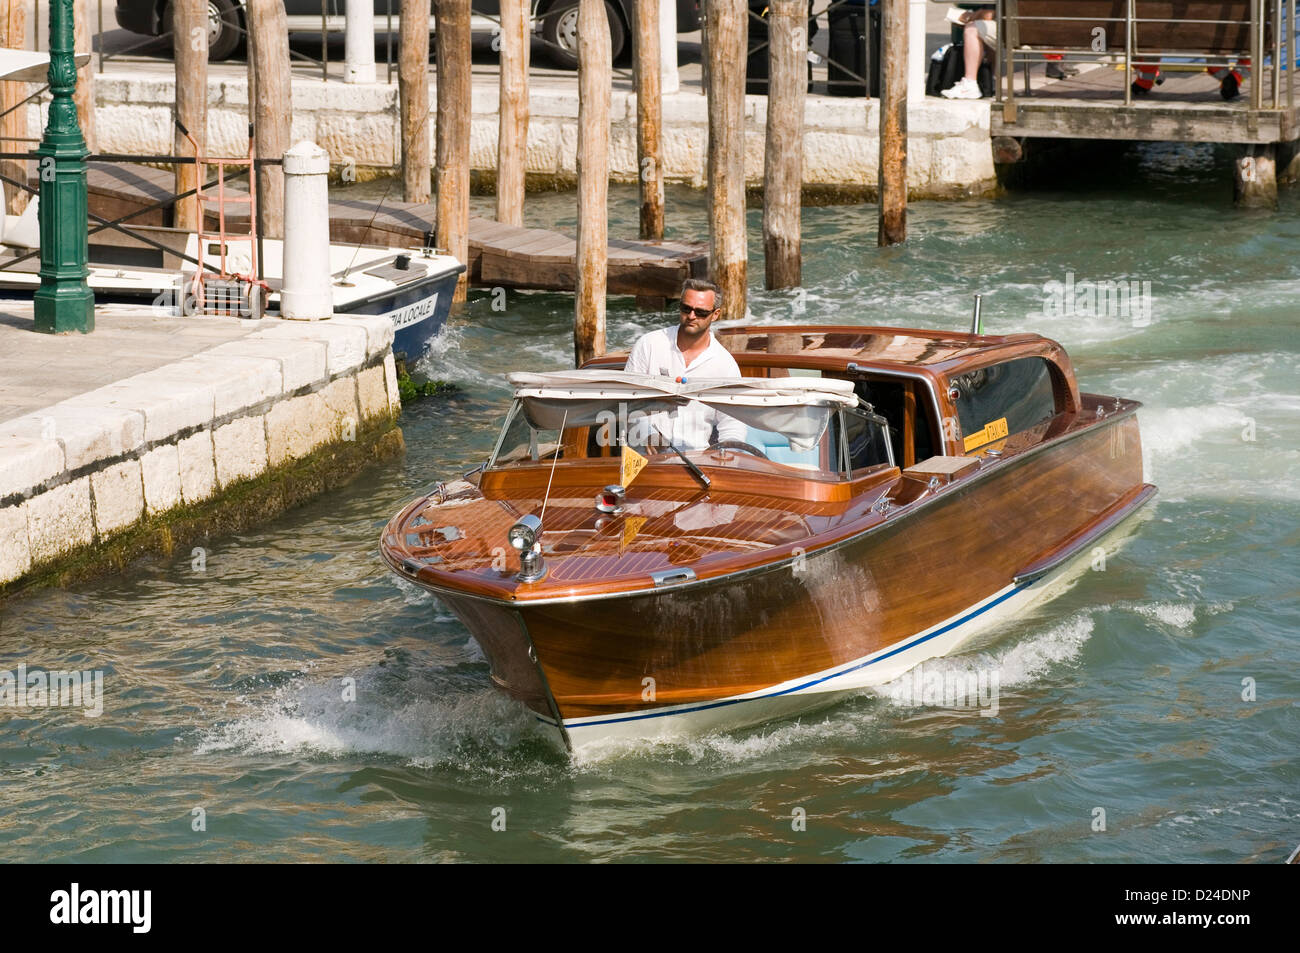 venice italy speed boats - photo#36